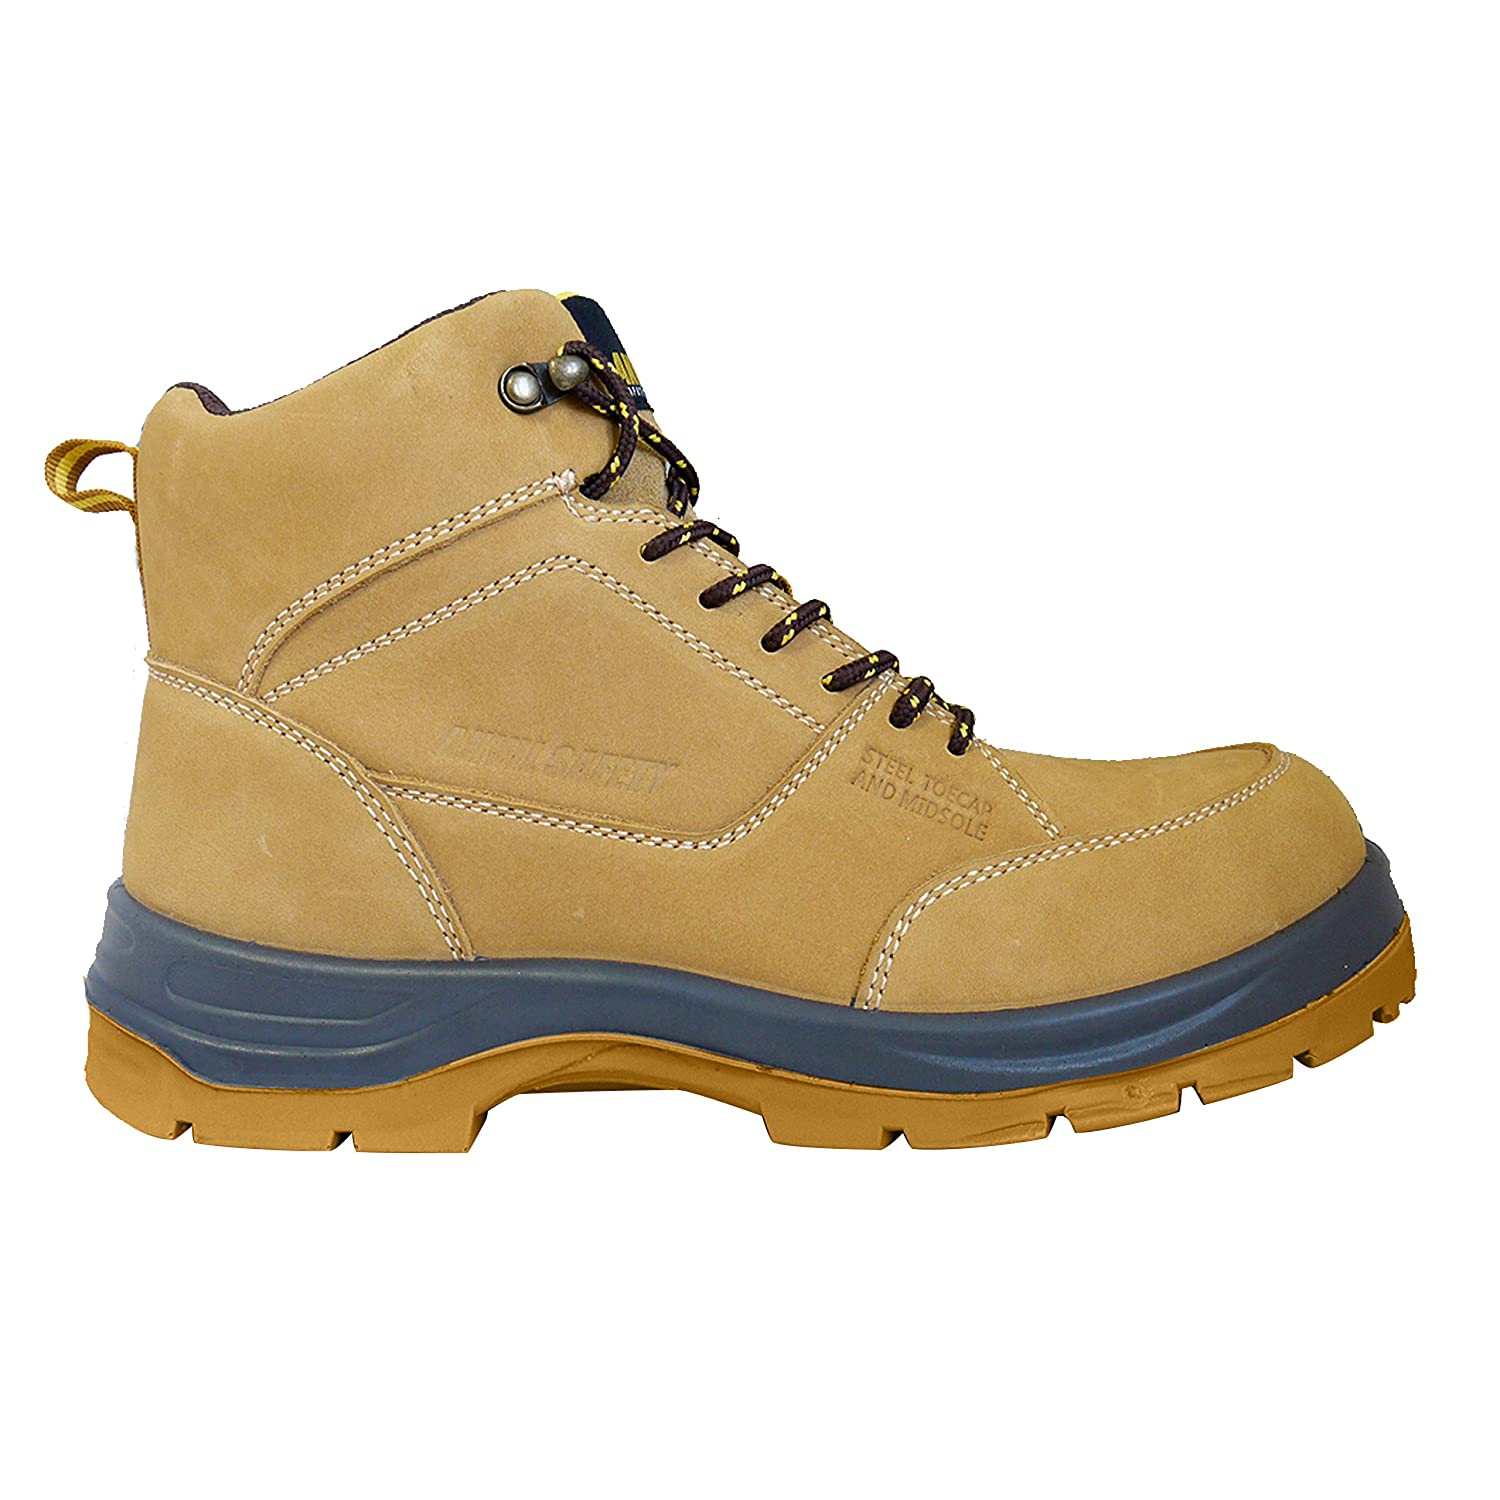 - Anvil Safety Sheffield S3 SRC Honey Nubuck Steel Toe Cap Wide Fit Safety Boots